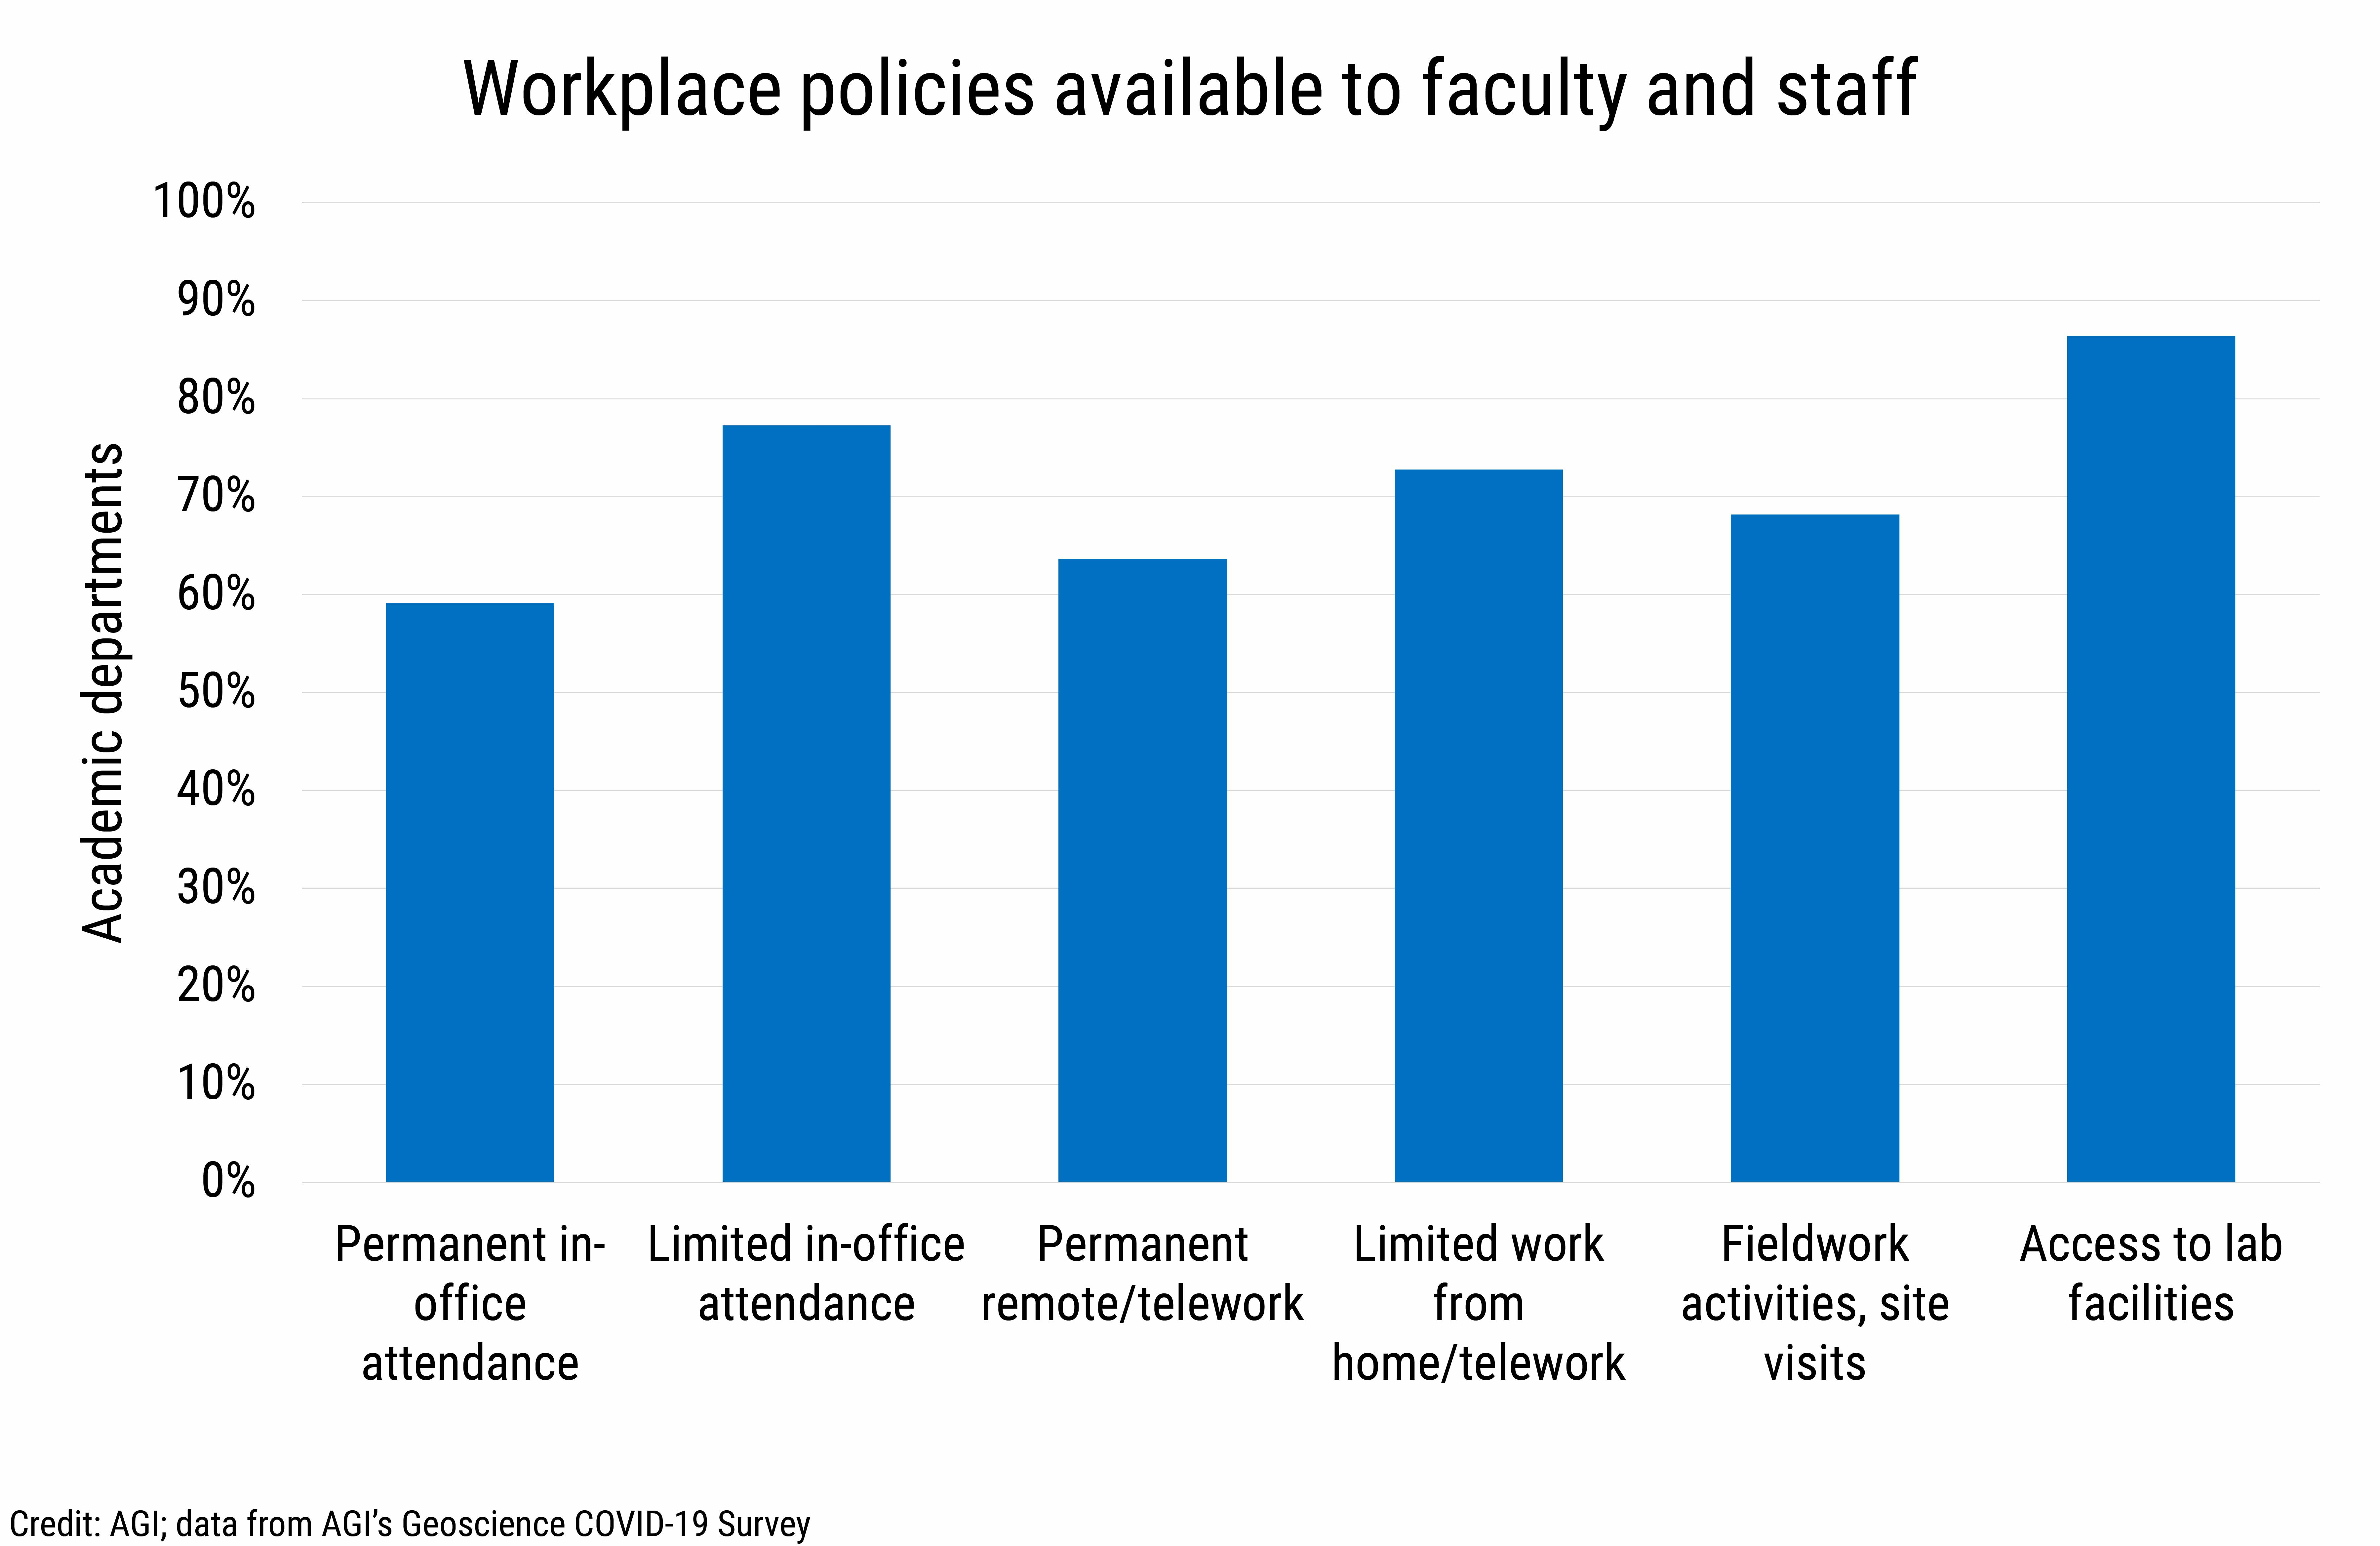 DB_2021-014 chart 04: Workplace policies available to faculty and staff (Credit: AGI; data from AGI's Geoscience COVID-19 Survey)